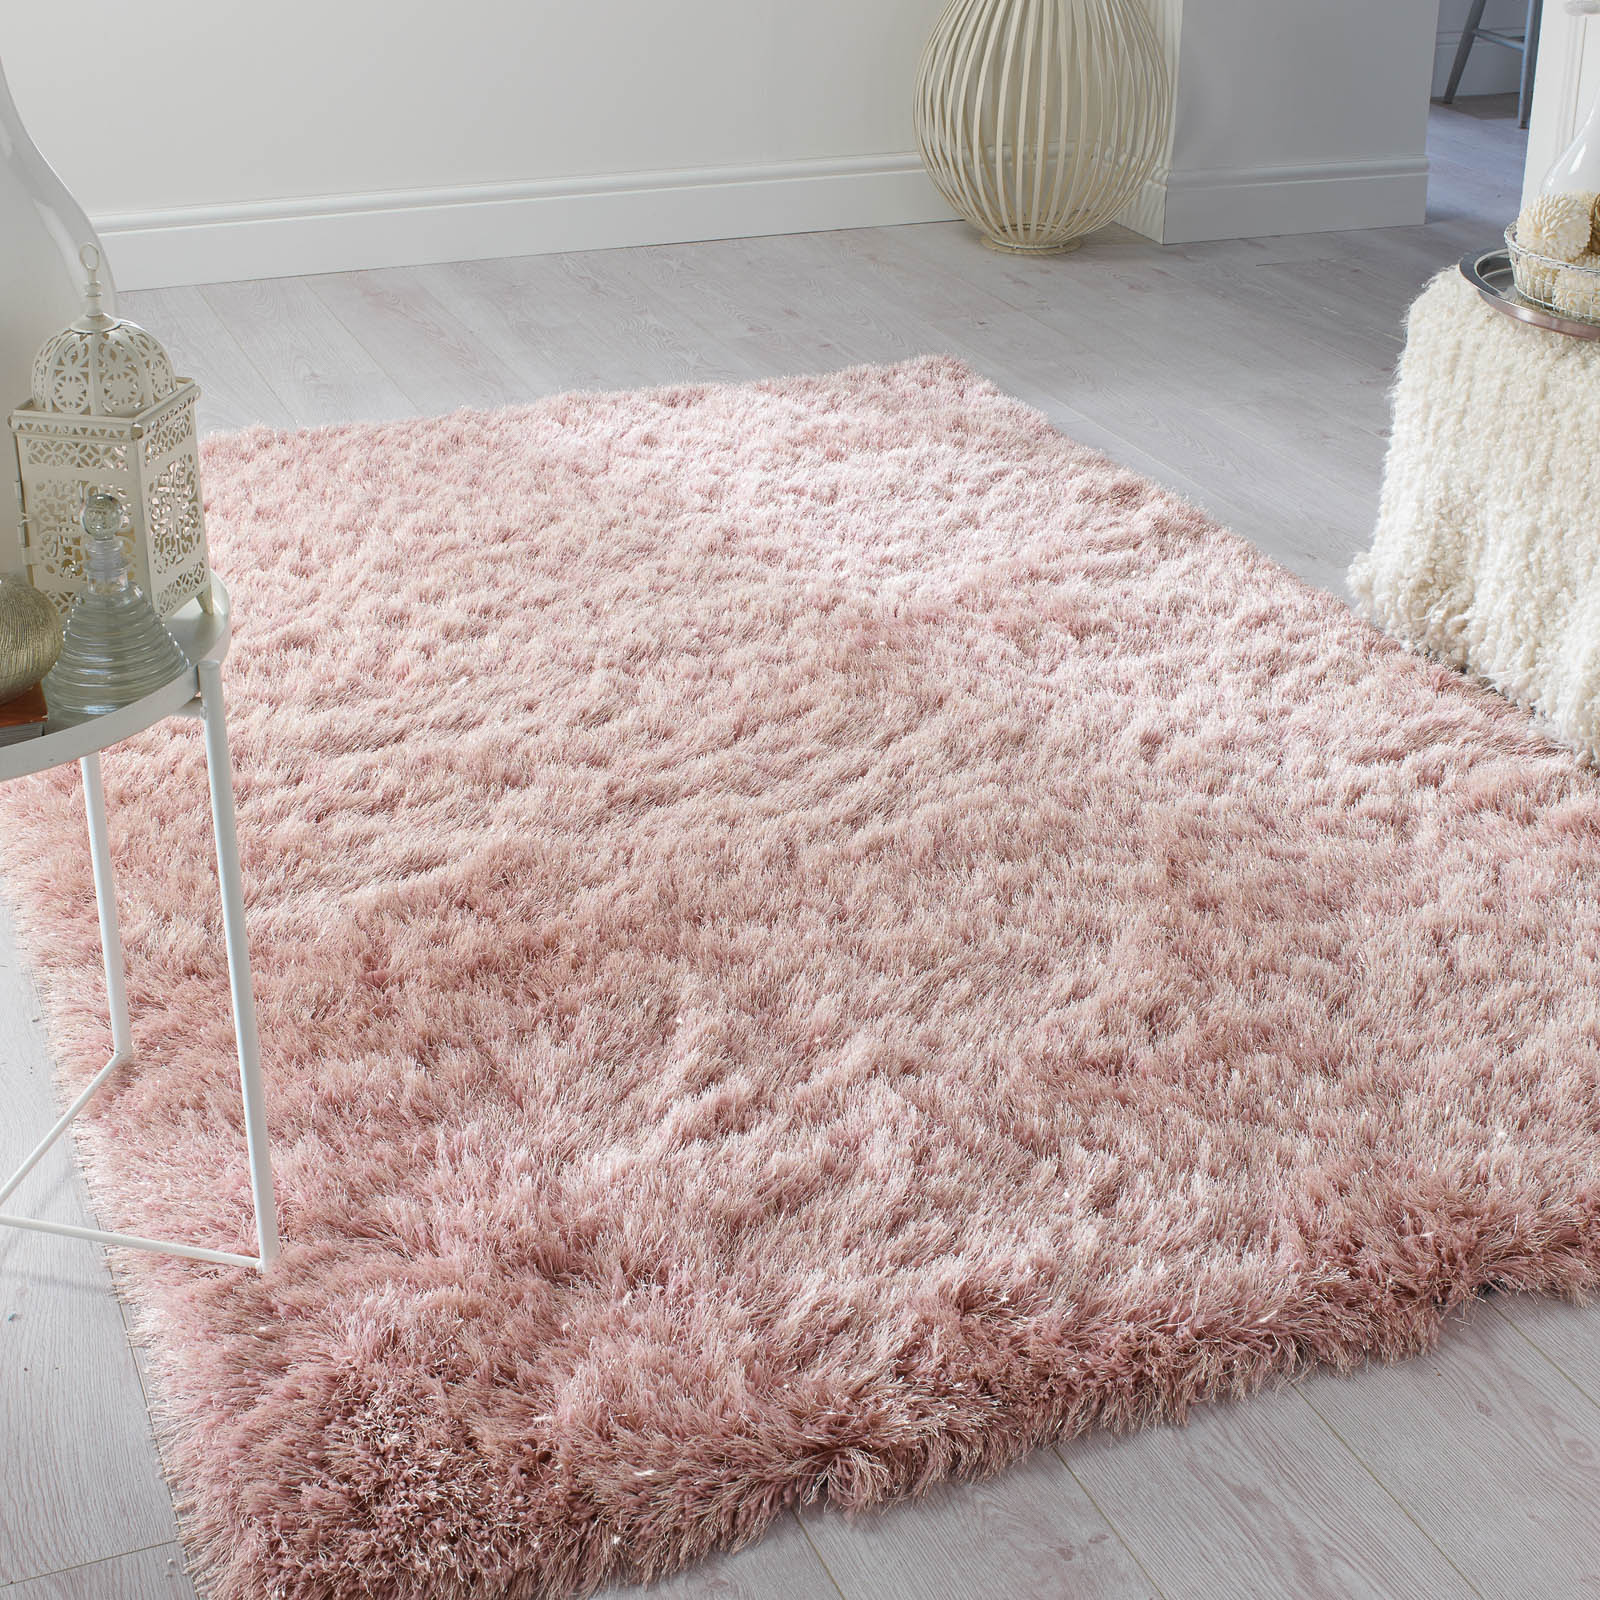 Ikea Adum Rug Light Brown Pink: Rugs Ideas